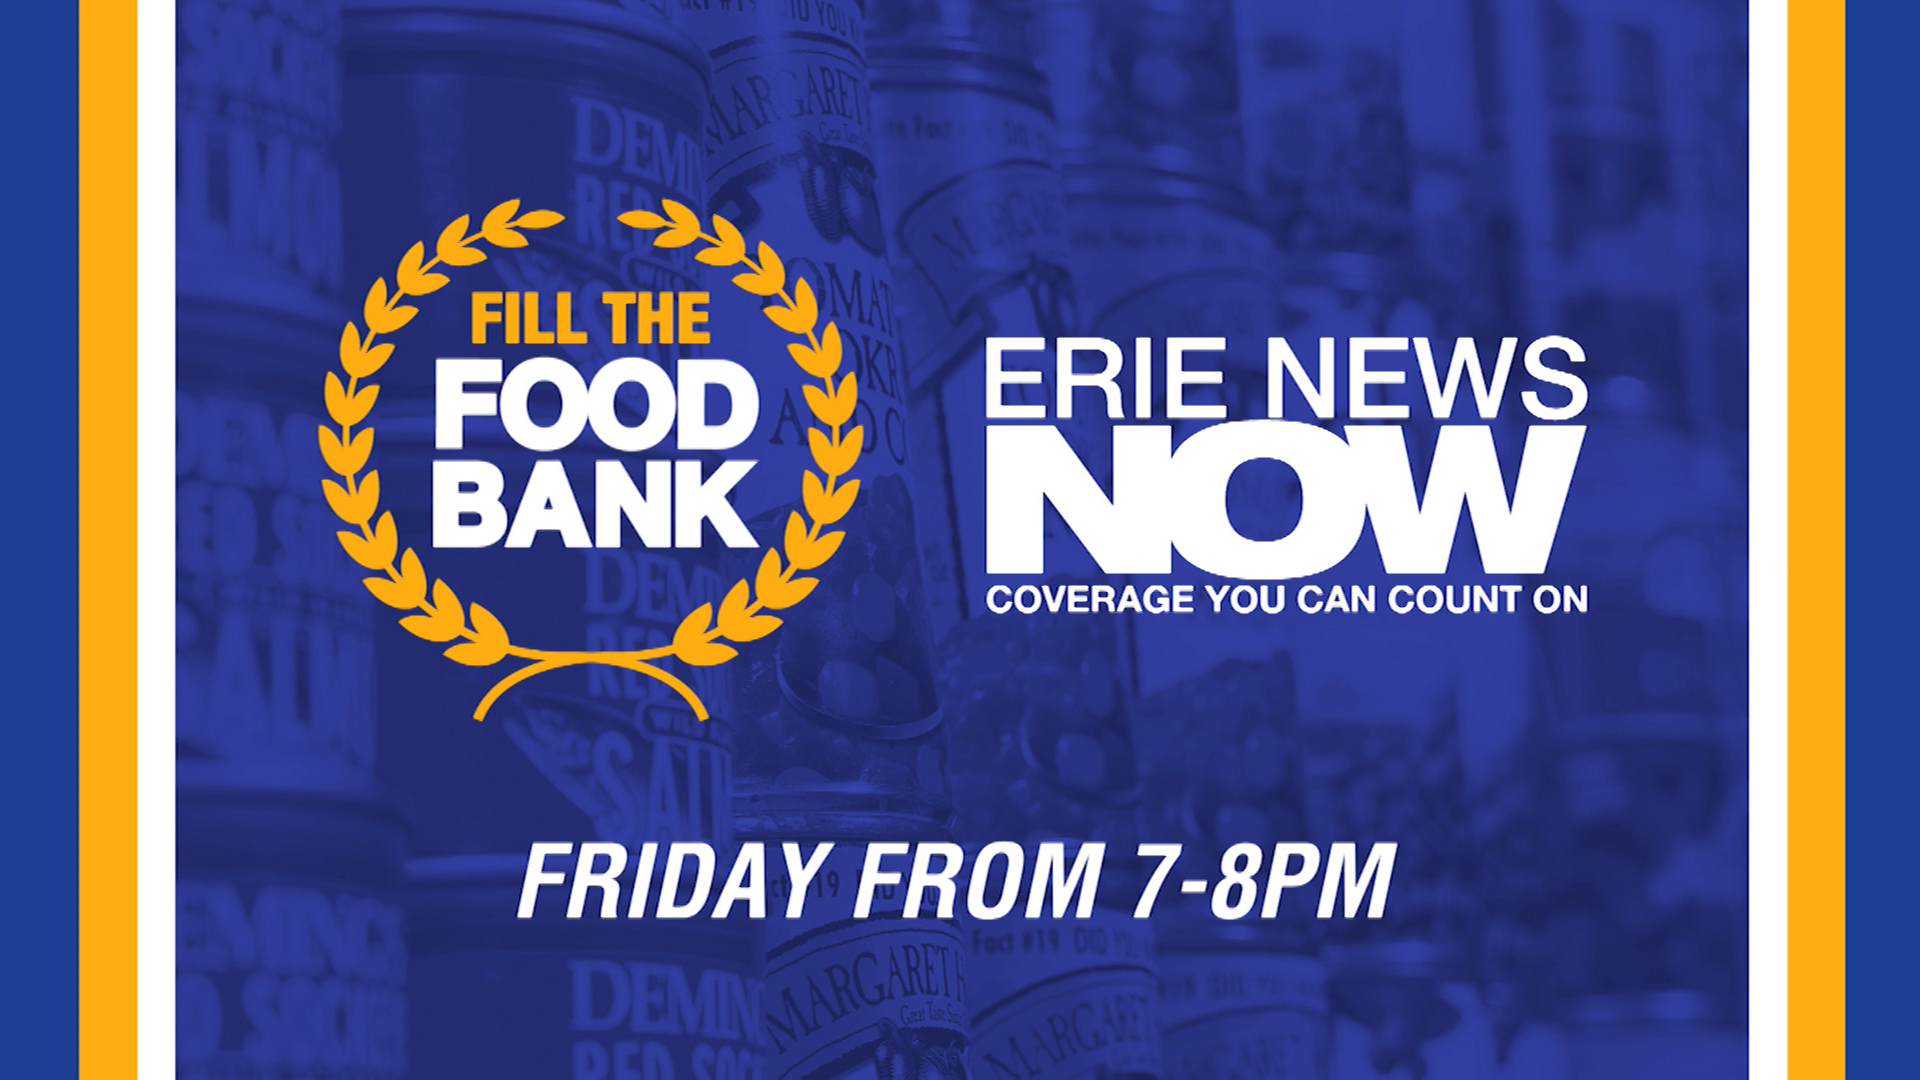 Erie News Now Fill the Food Bank